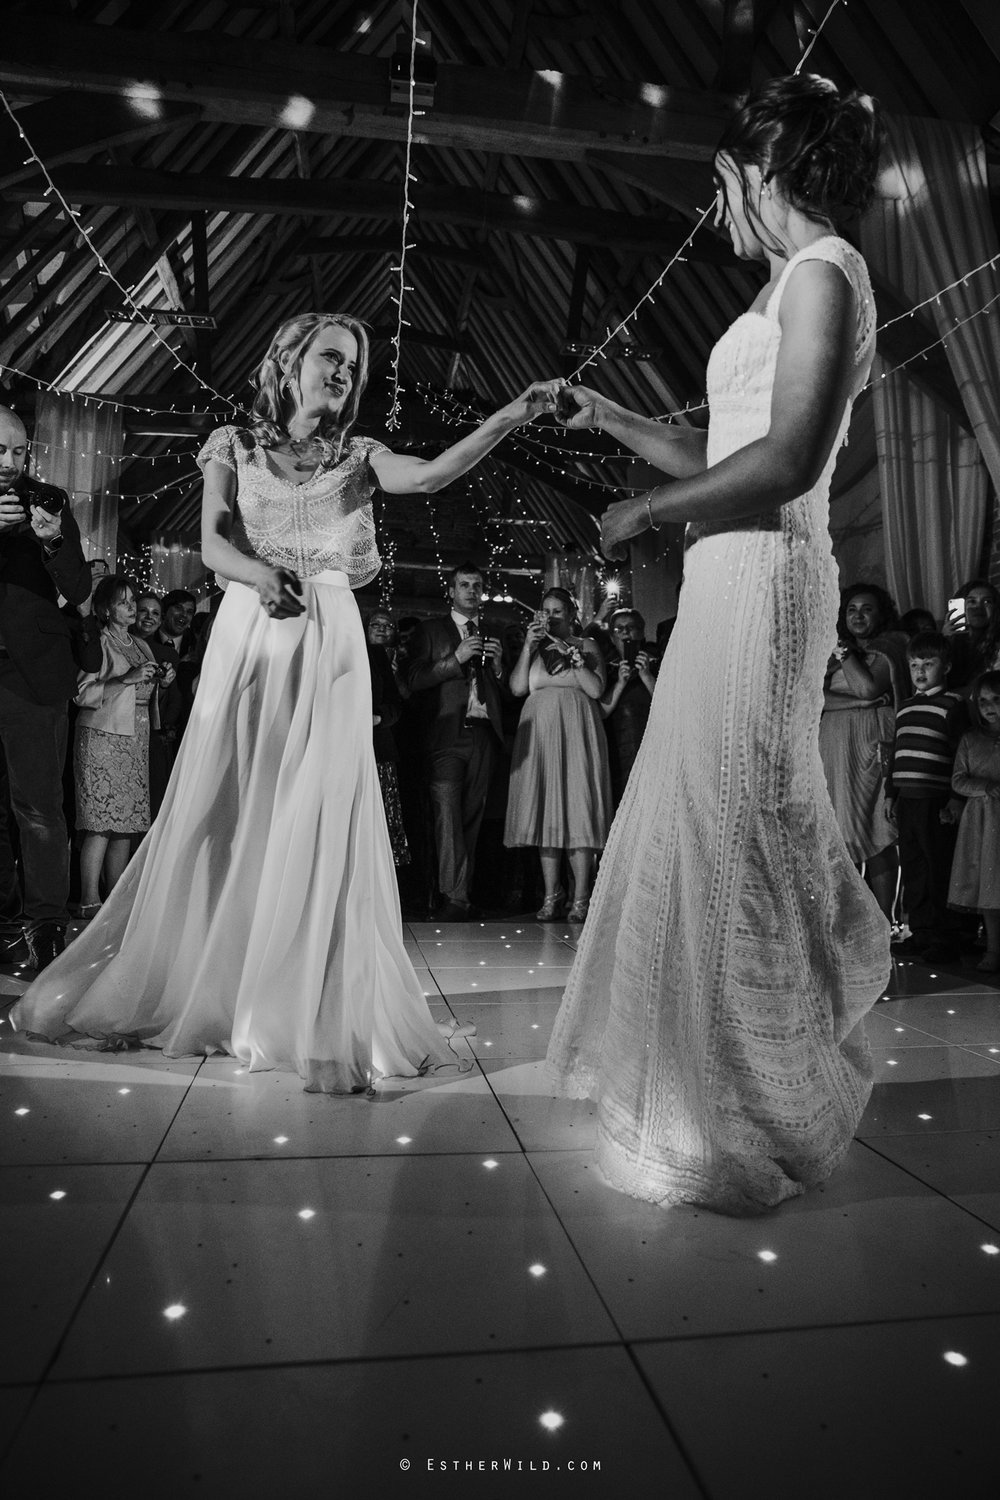 Elms_Barn_Weddings_Suffolk_Photographer_Copyright_Esther_Wild_IMG_3417-2.jpg